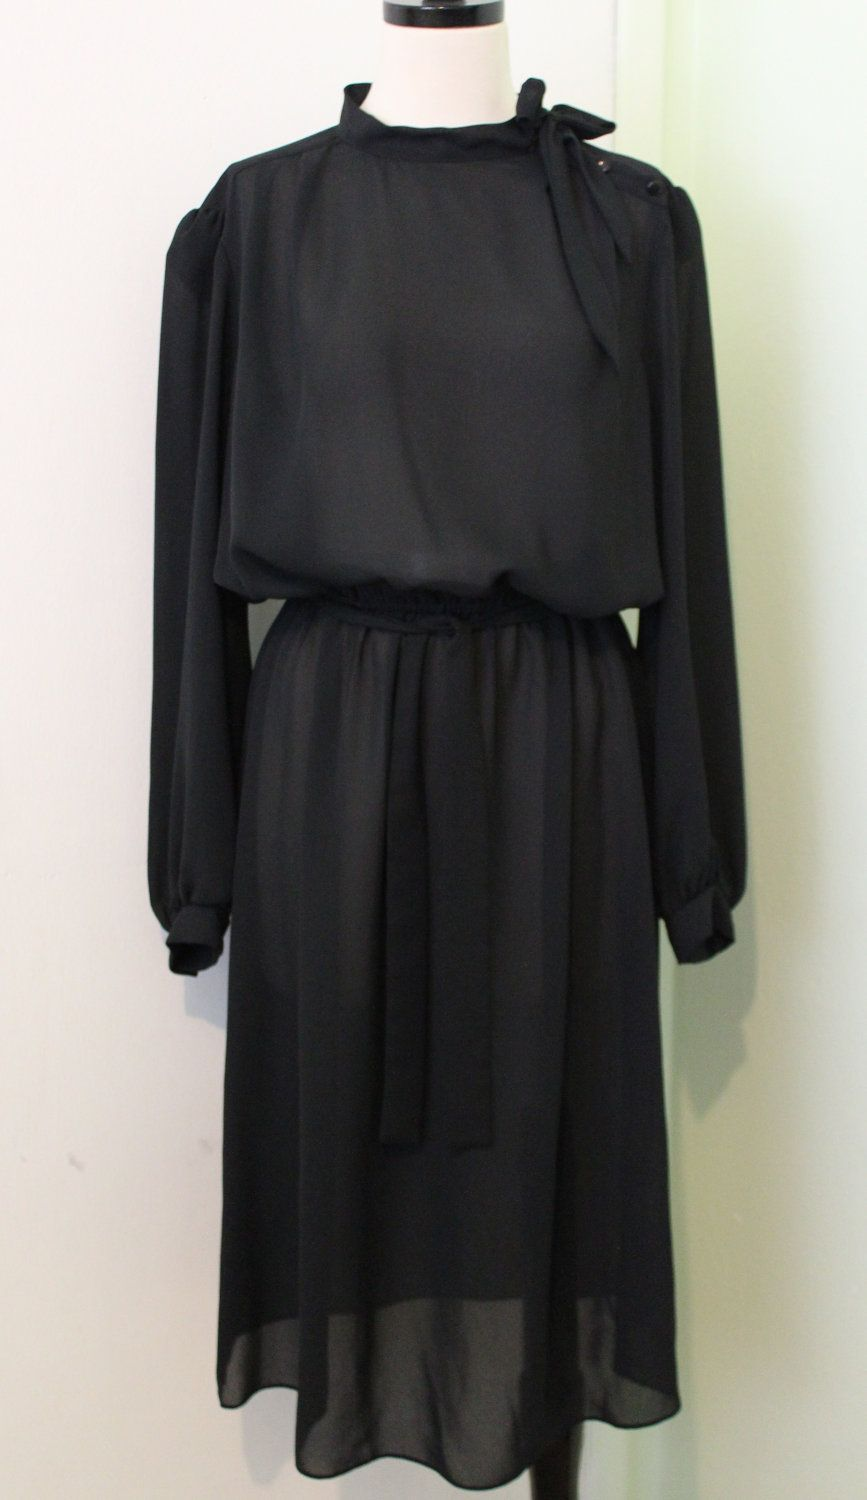 Black+Sheer+Dress+with+Bow+Tie+by+MyKindsYourKind+on+Etsy,+$32.00